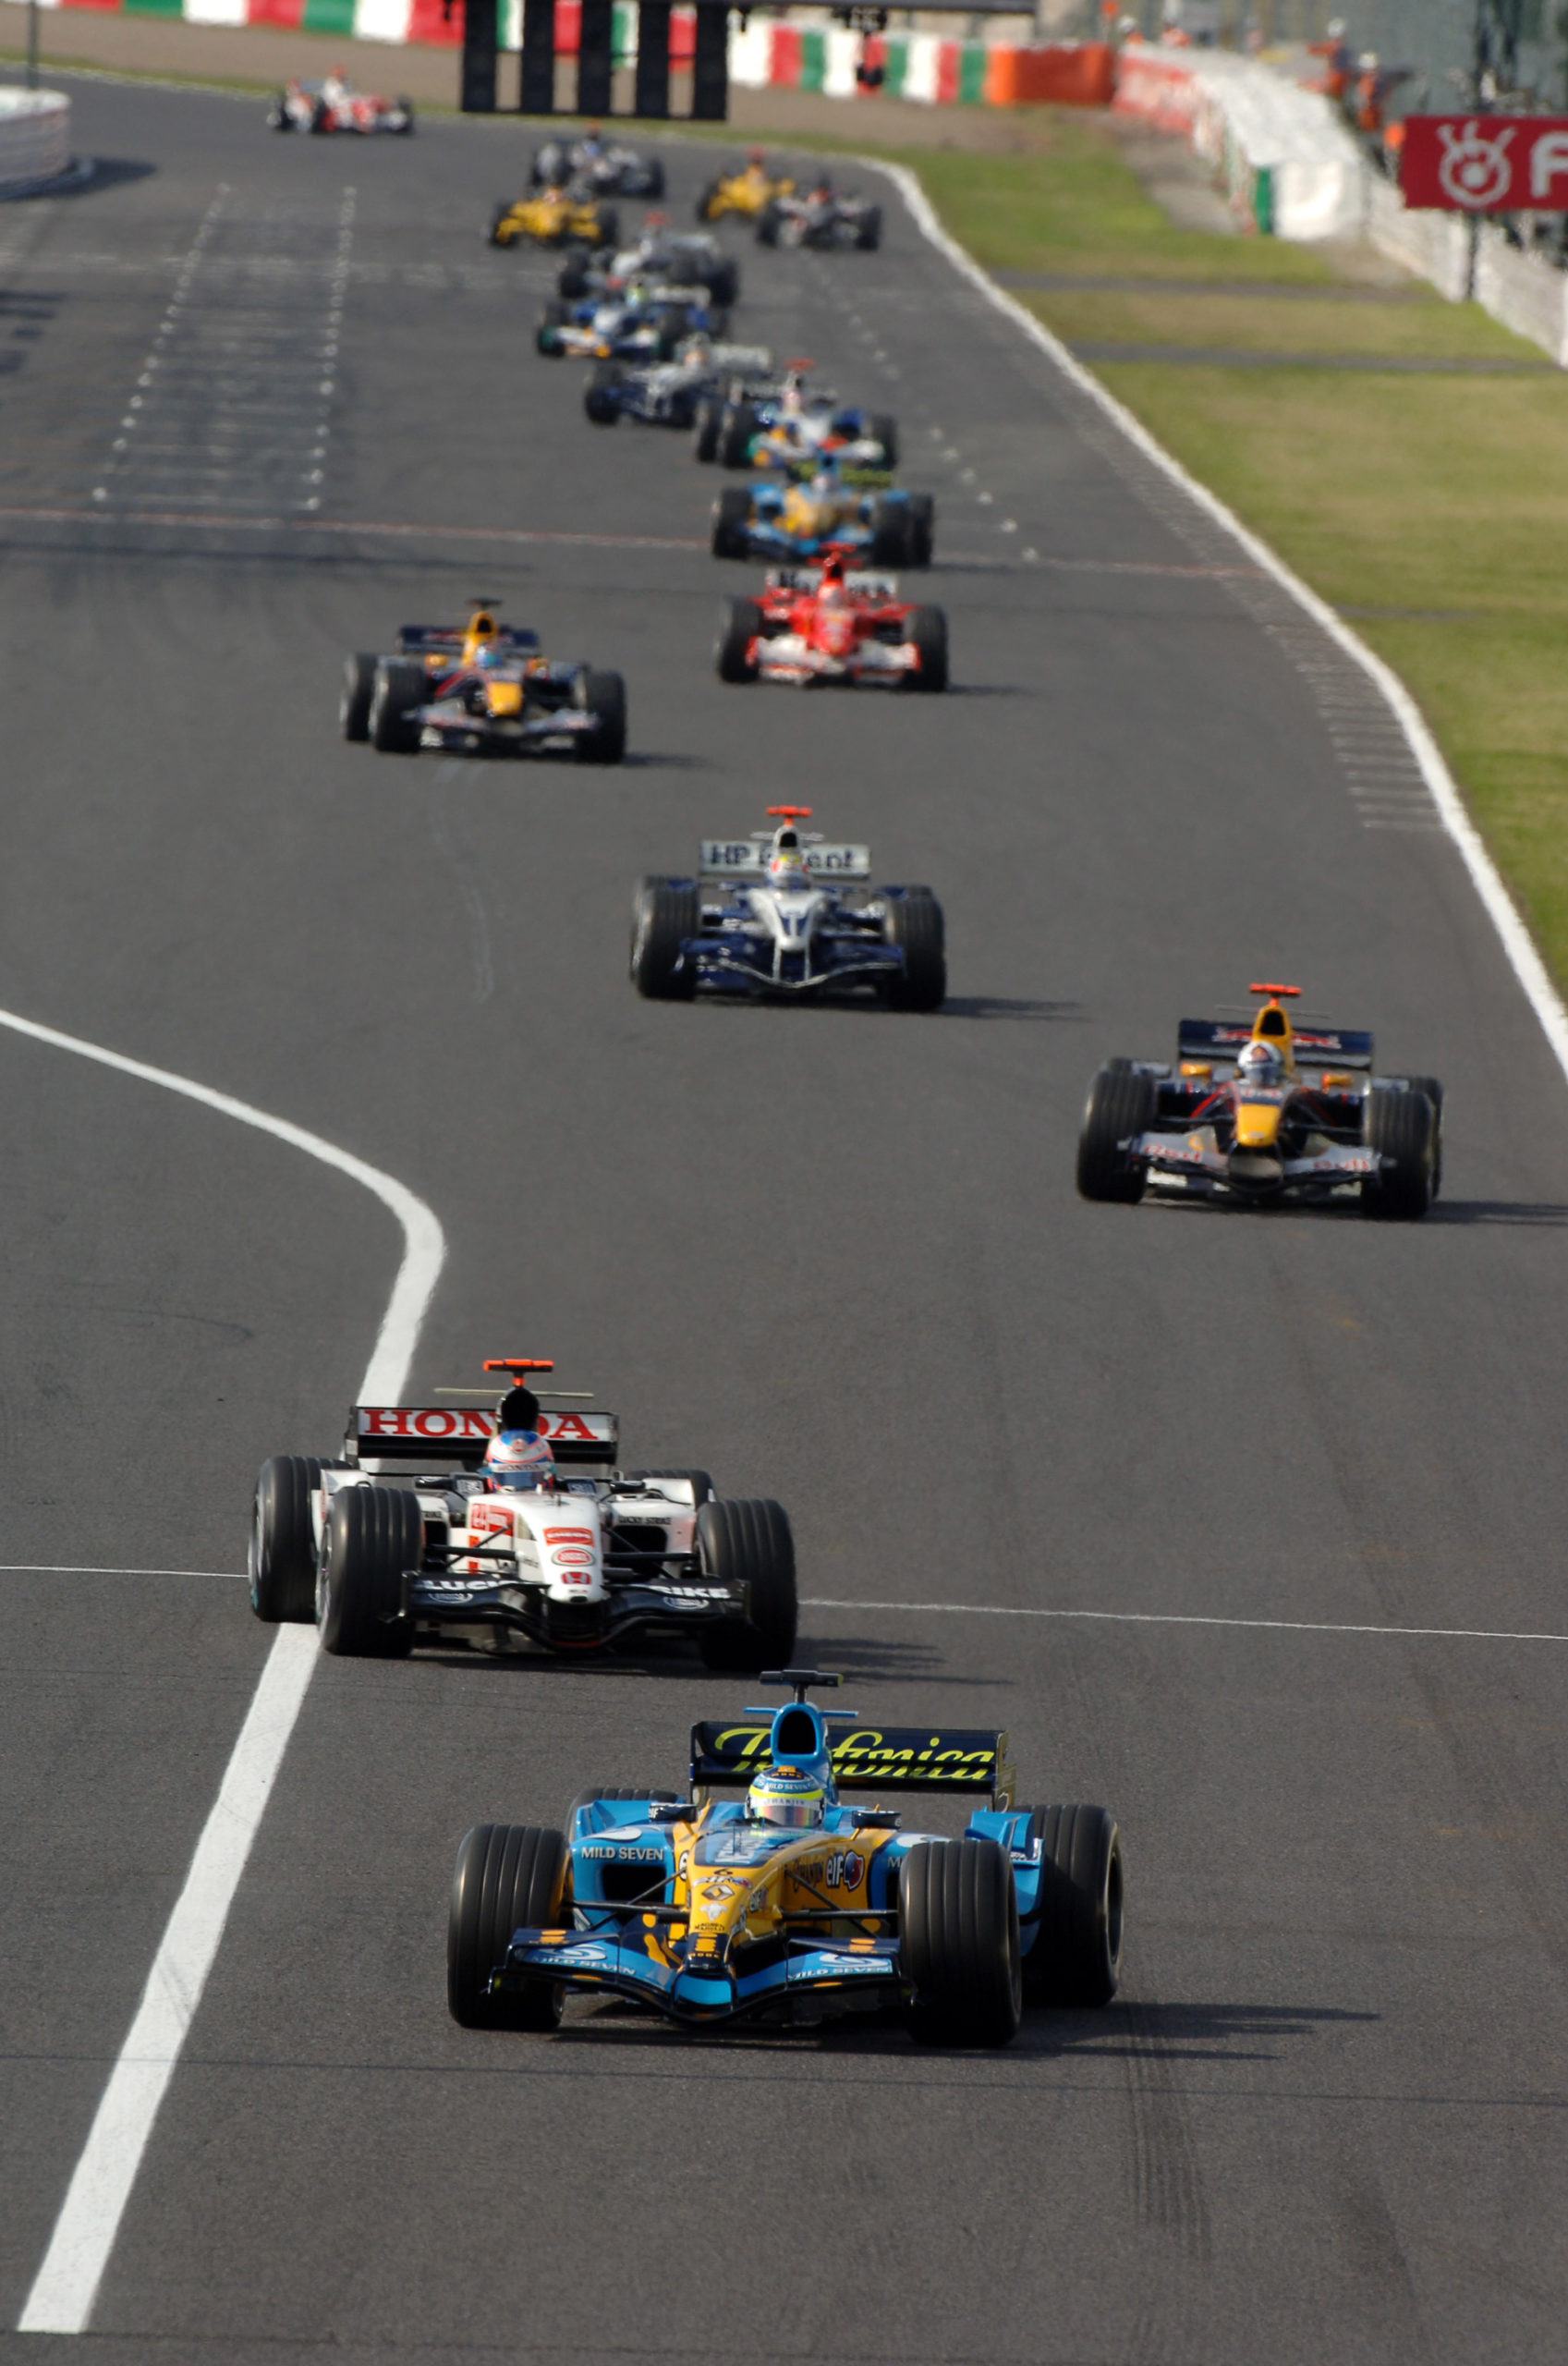 Giancarlo-Fisichella-in-second-place-at-the-start-of-the-2005-F1-Japanese-Grand-Prix-at-Suzuka